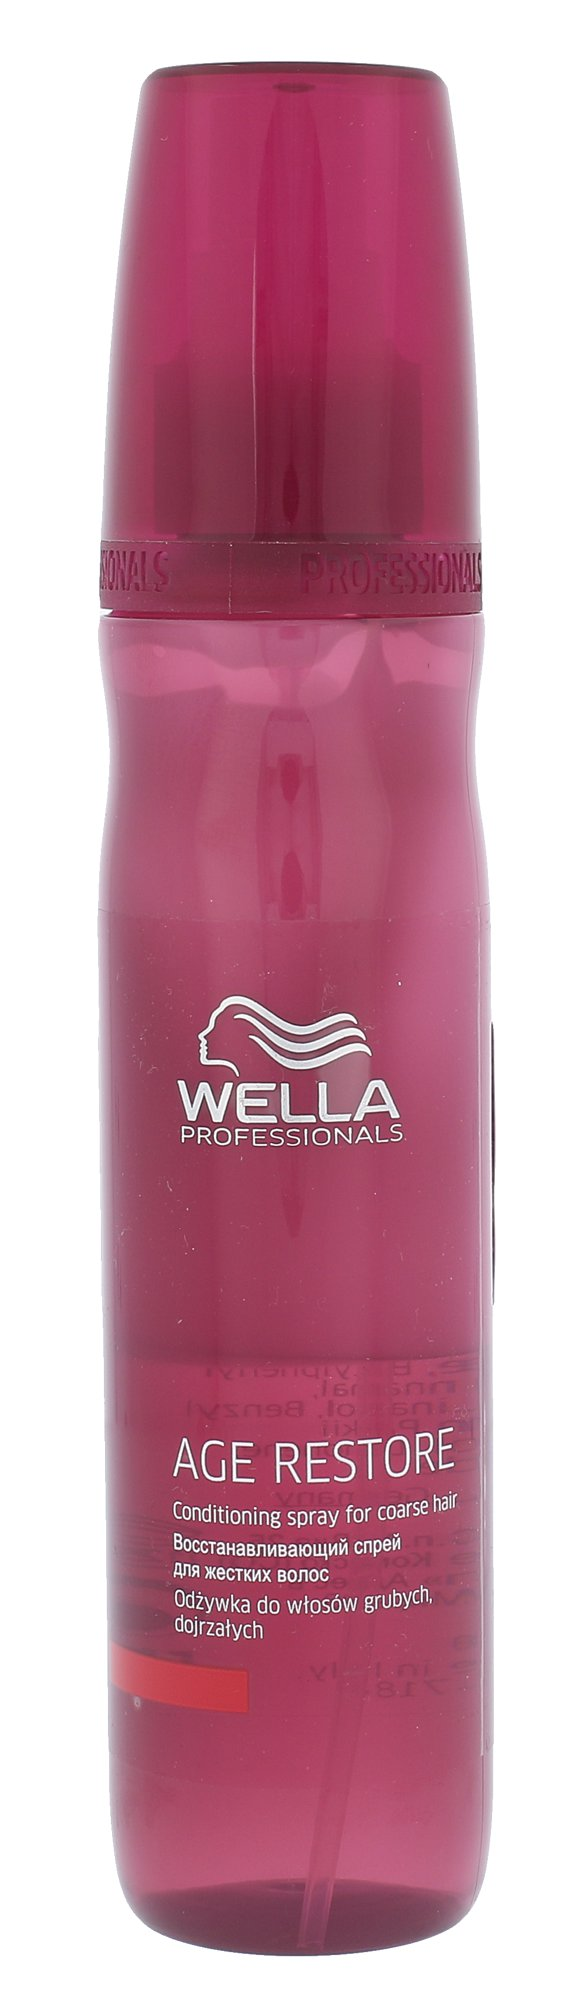 Wella Age Restore, Kondicionér 150ml